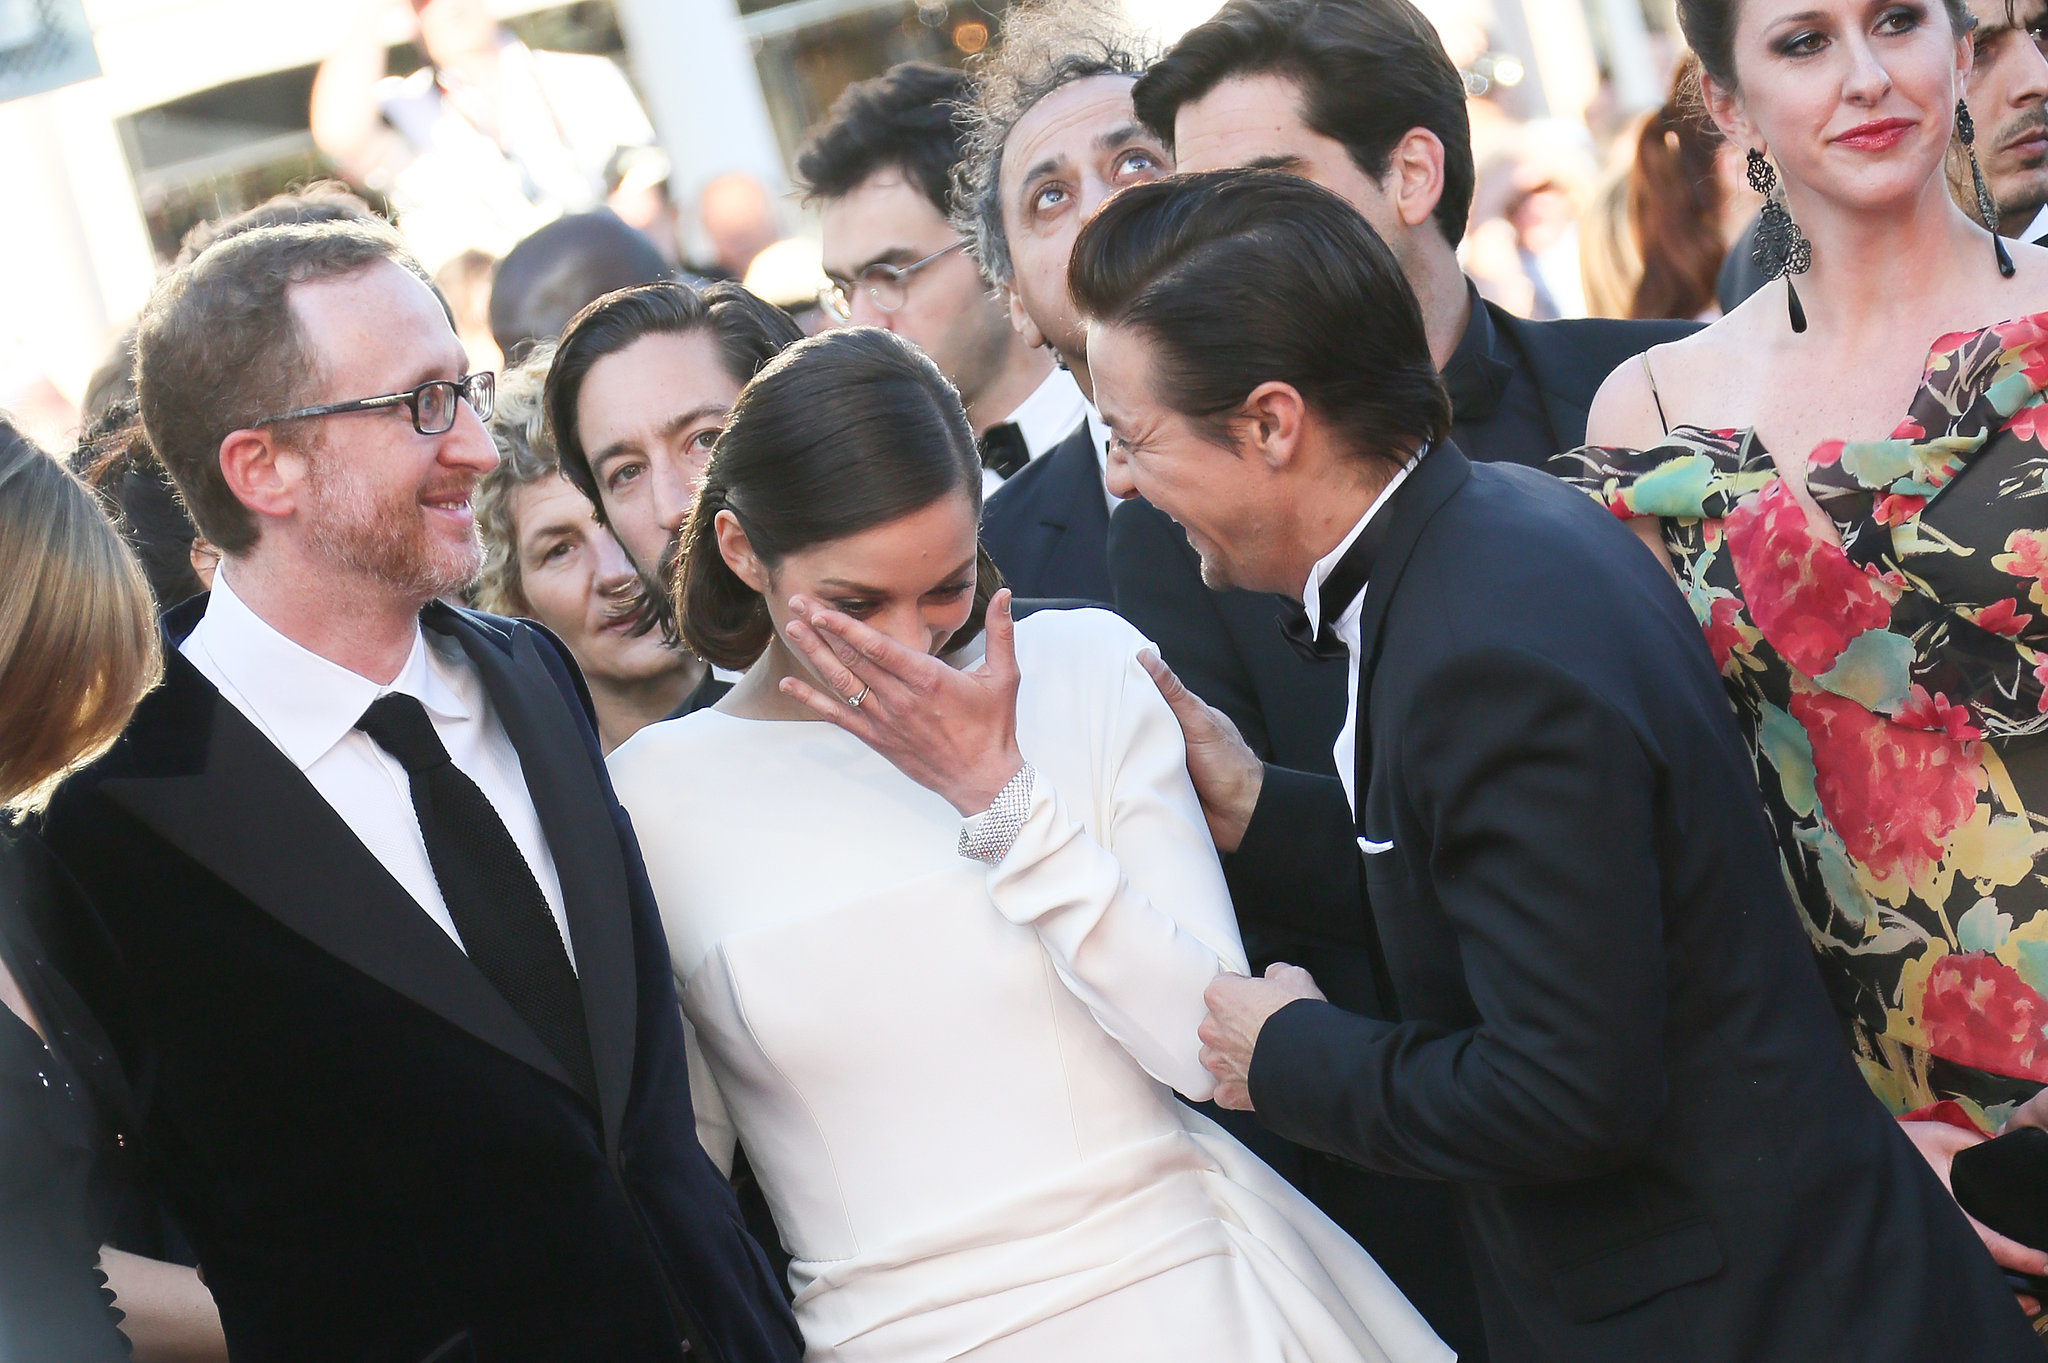 Marion Cotillard got emotional during the 2013 red carpet premiere of The Immigrant; her costar, Jeremy Renner, helped her compose herself.